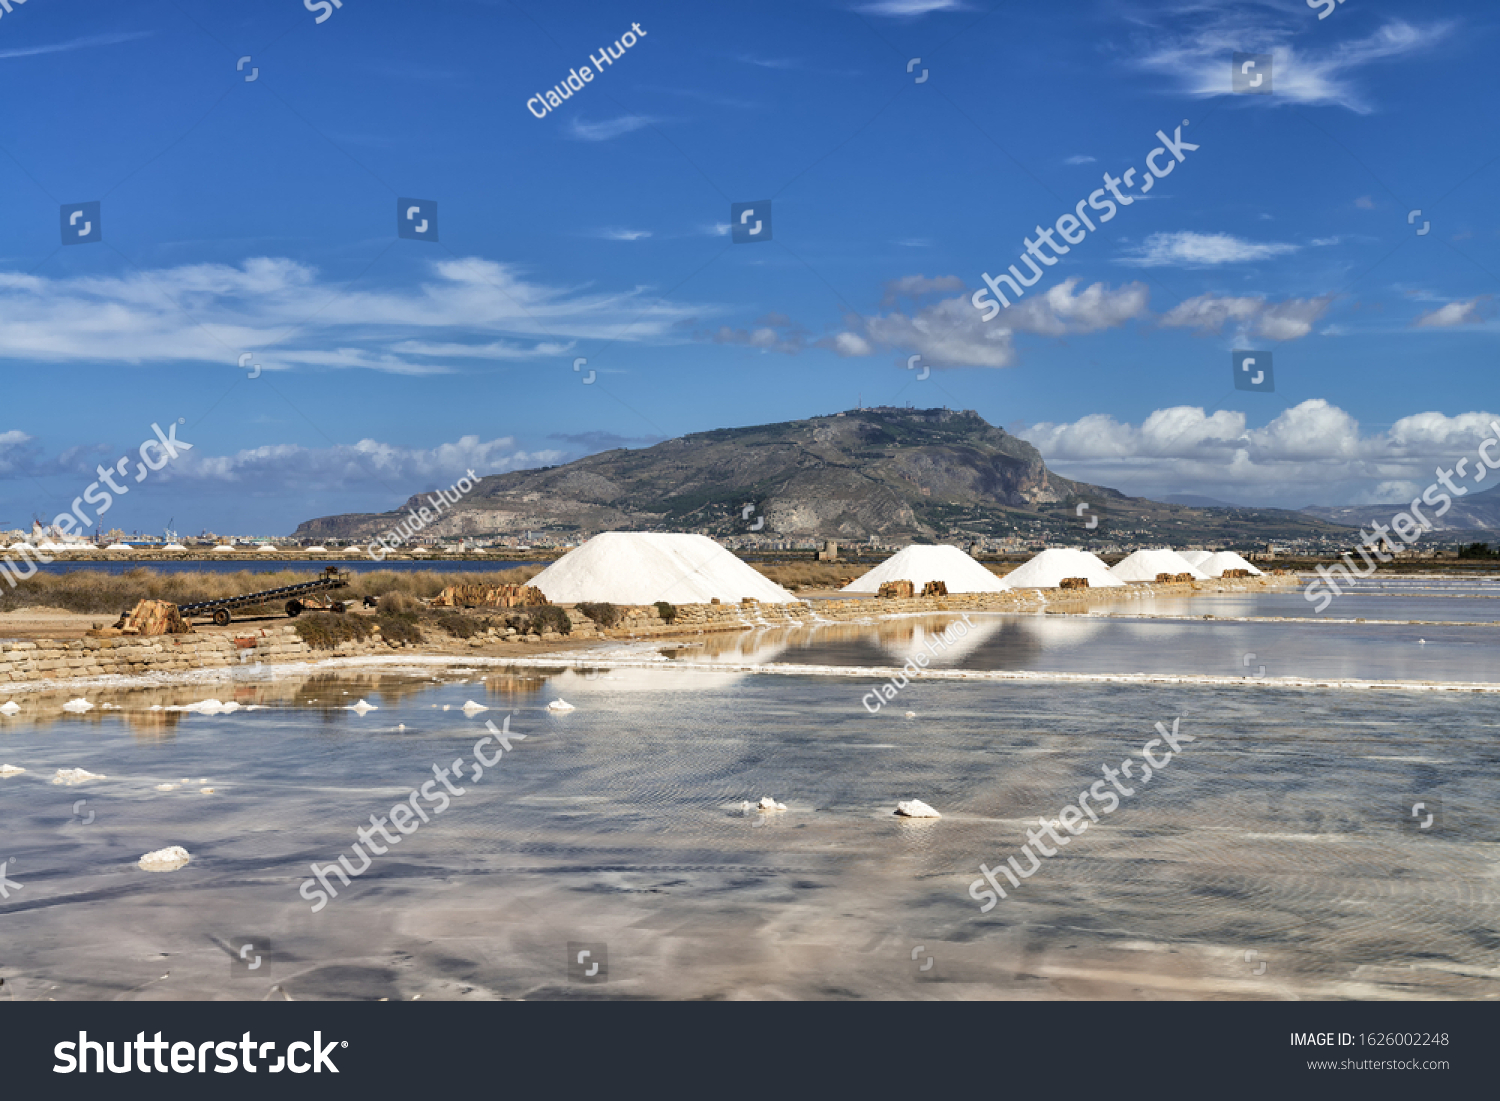 Salt monds and pans in the region of Trapani and Paceco in Sicily, Italy. The salt production from seawater is a big industry here. The city of Erice is on top of the mountain in the background.